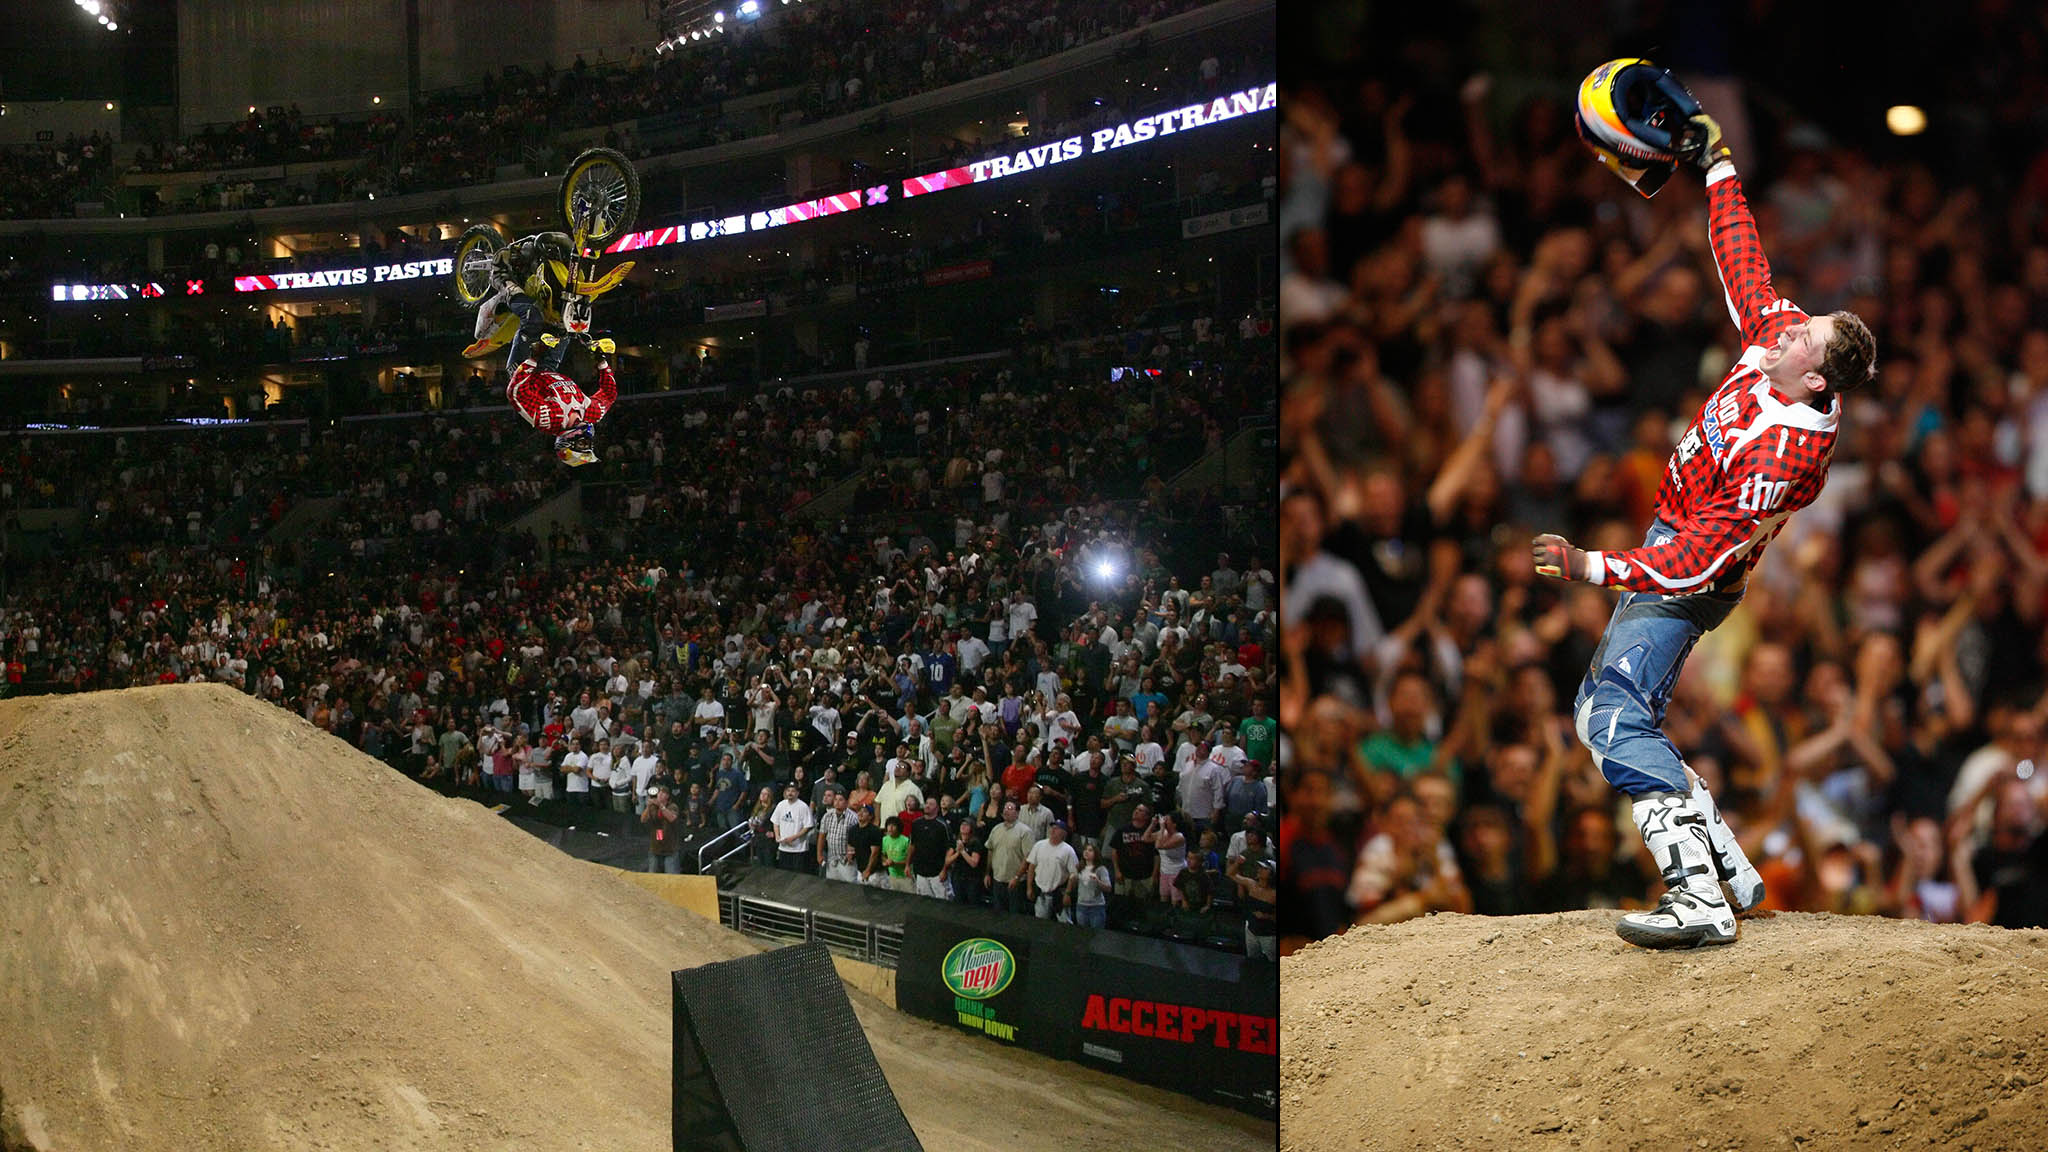 Travis Pastrana's double backflip